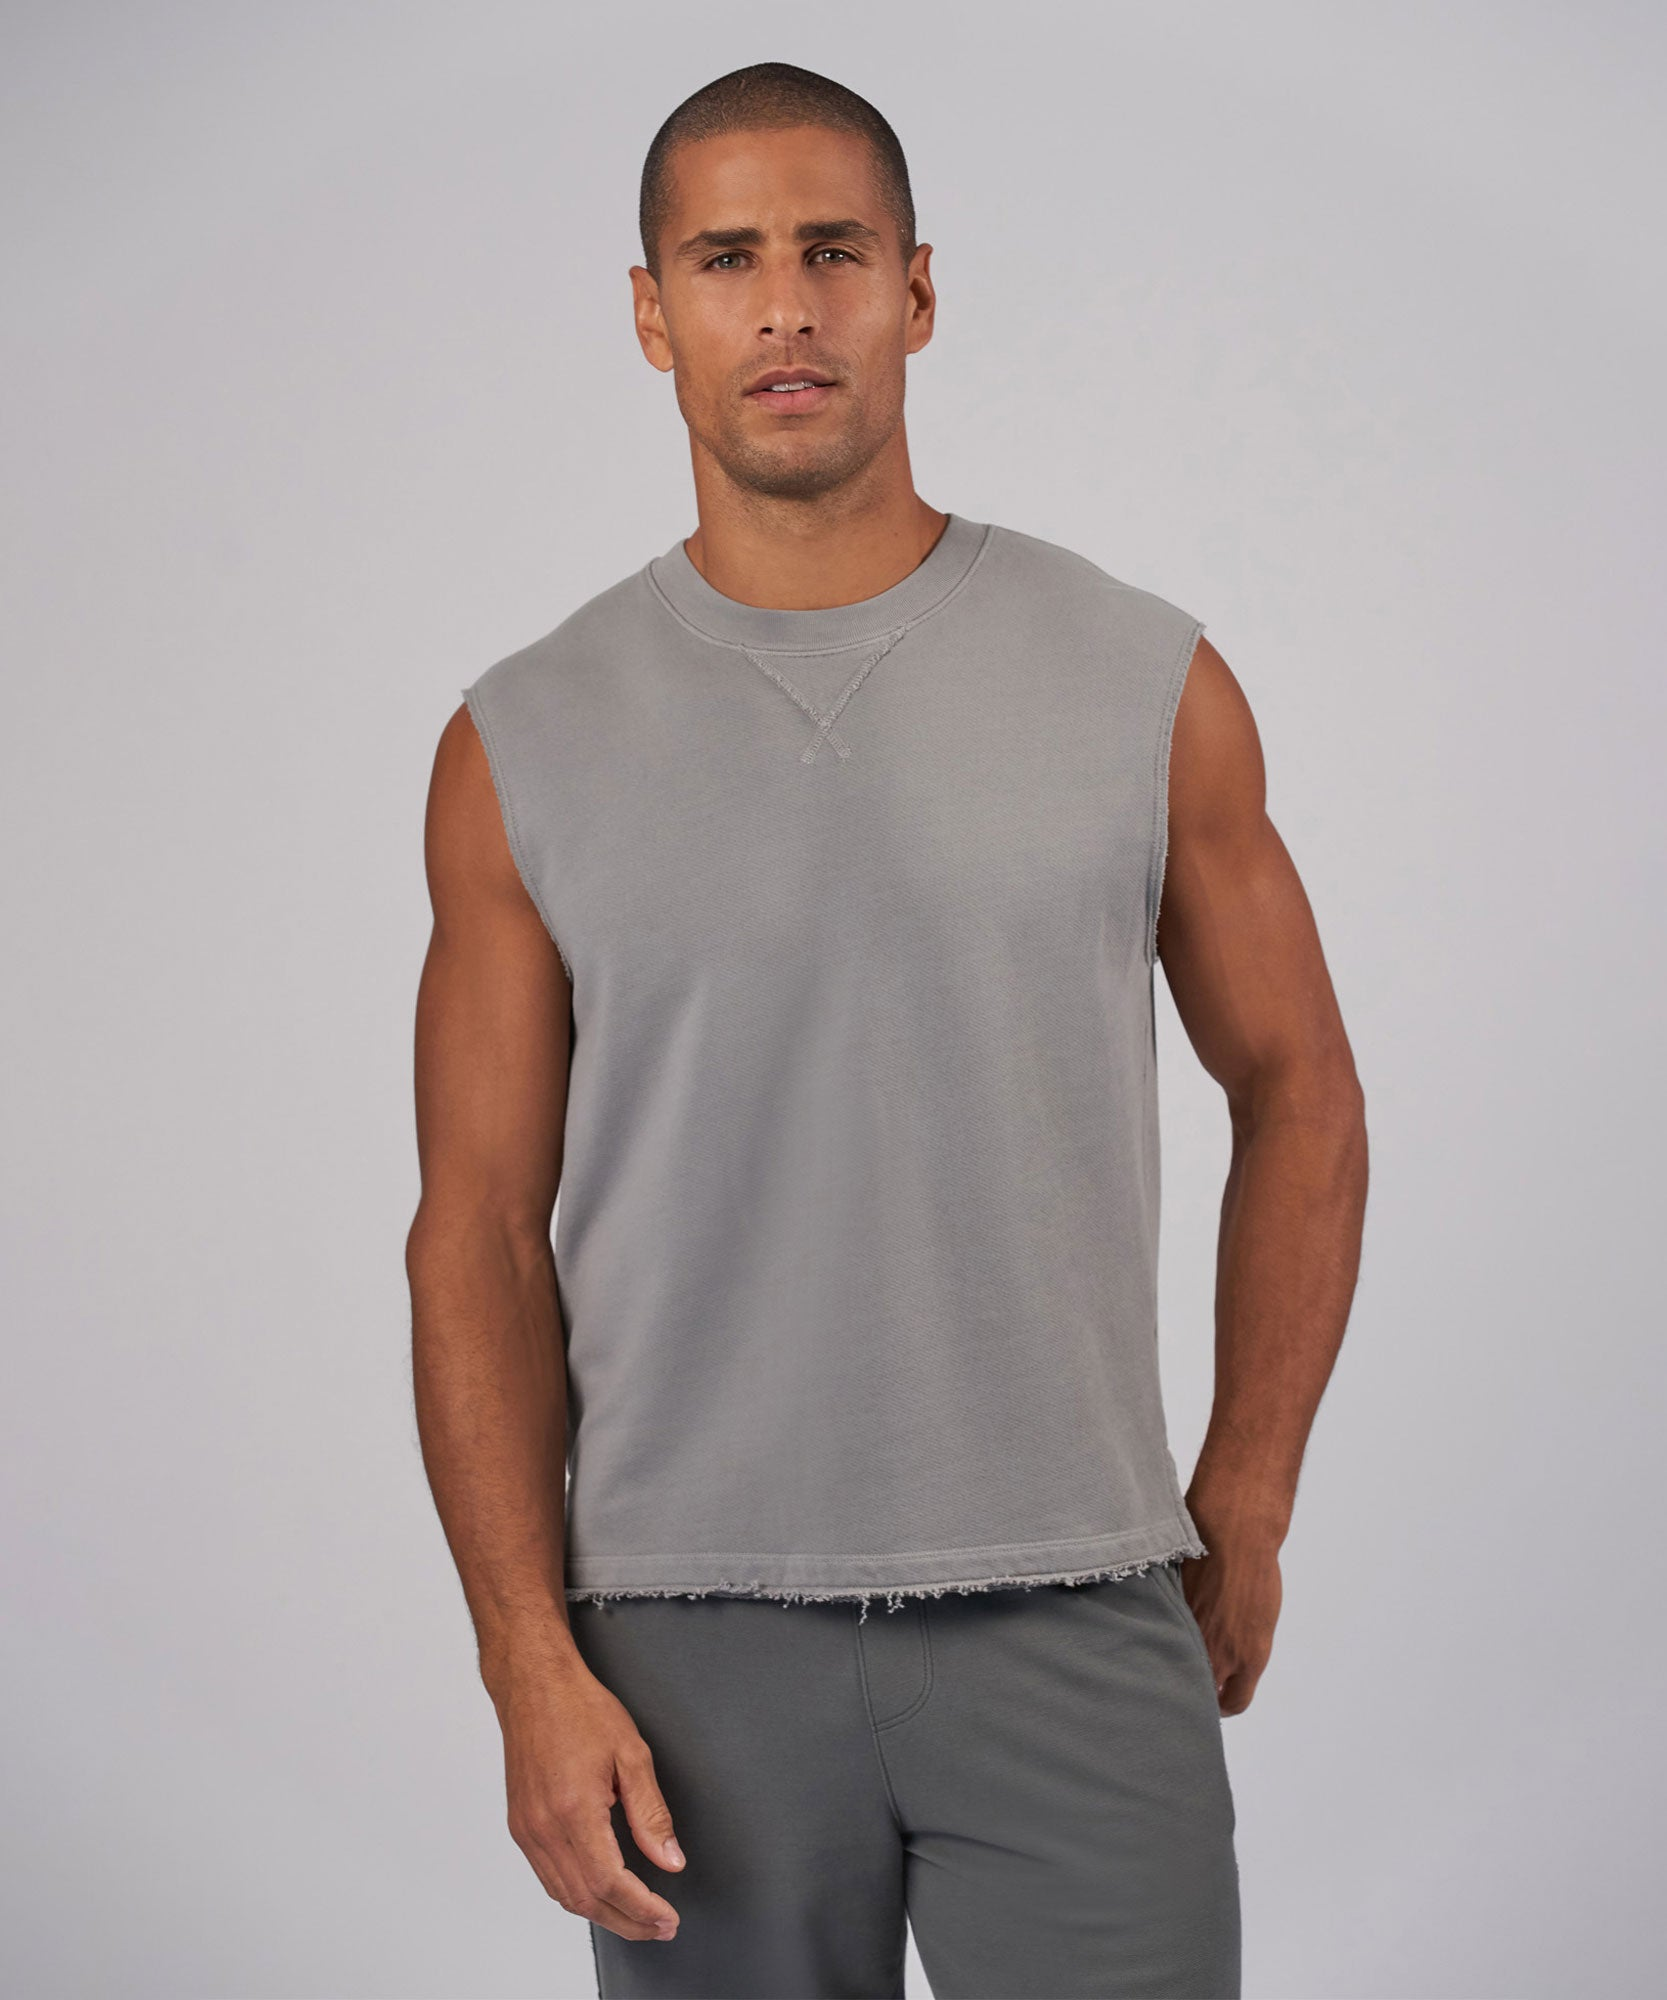 Fog French Terry Sleeveless Sweatshirt - Men's Sweatshirt by ATM Anthony Thomas Melillo